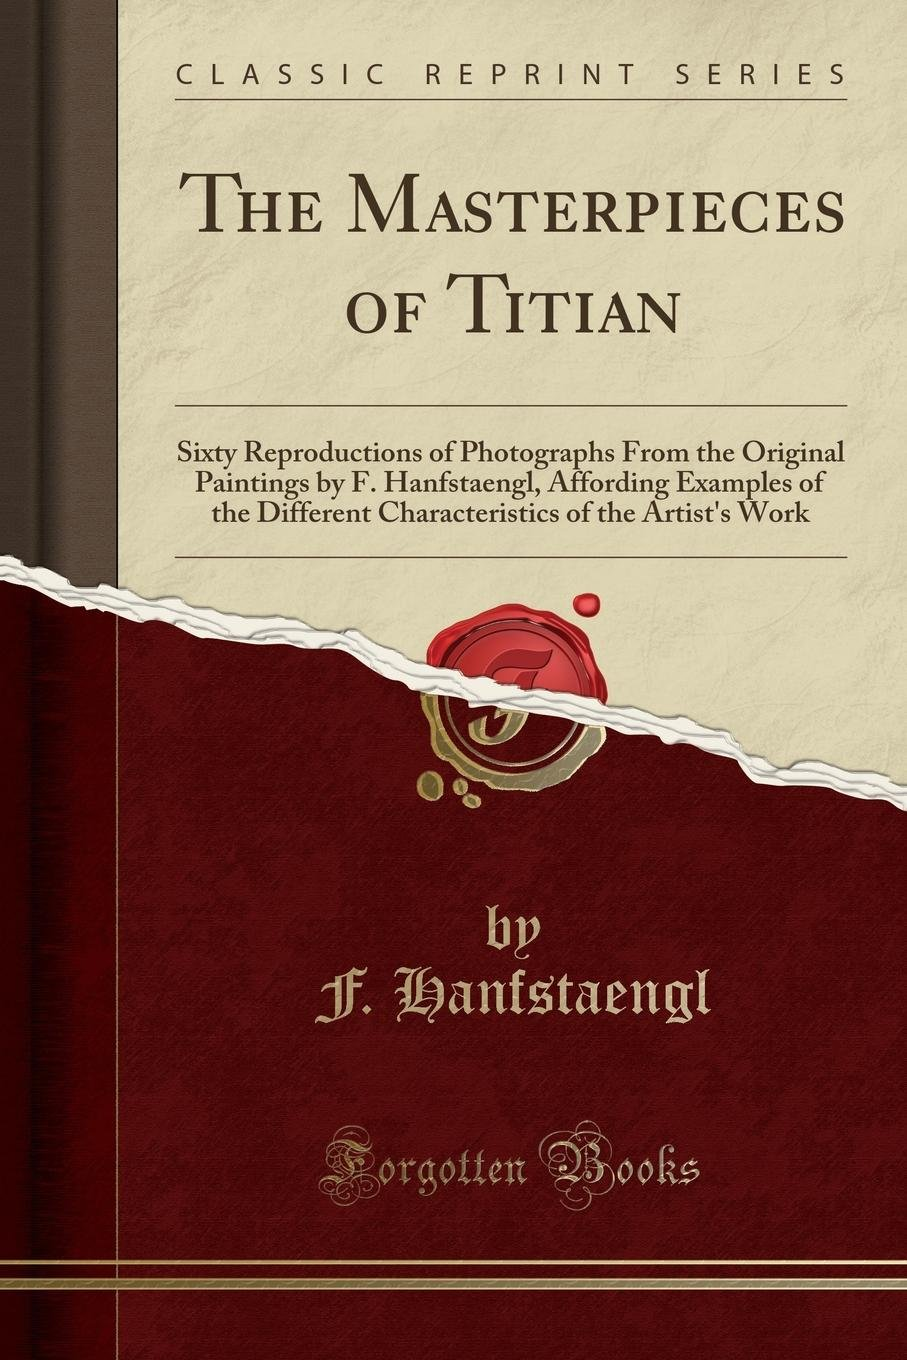 The Masterpieces of Titian: Sixty Reproductions of Photographs from the Original Paintings by F. Hanfstaengl, Affording Examples of the Different Characteristics of the Artist's Work (Classic Reprint) pdf